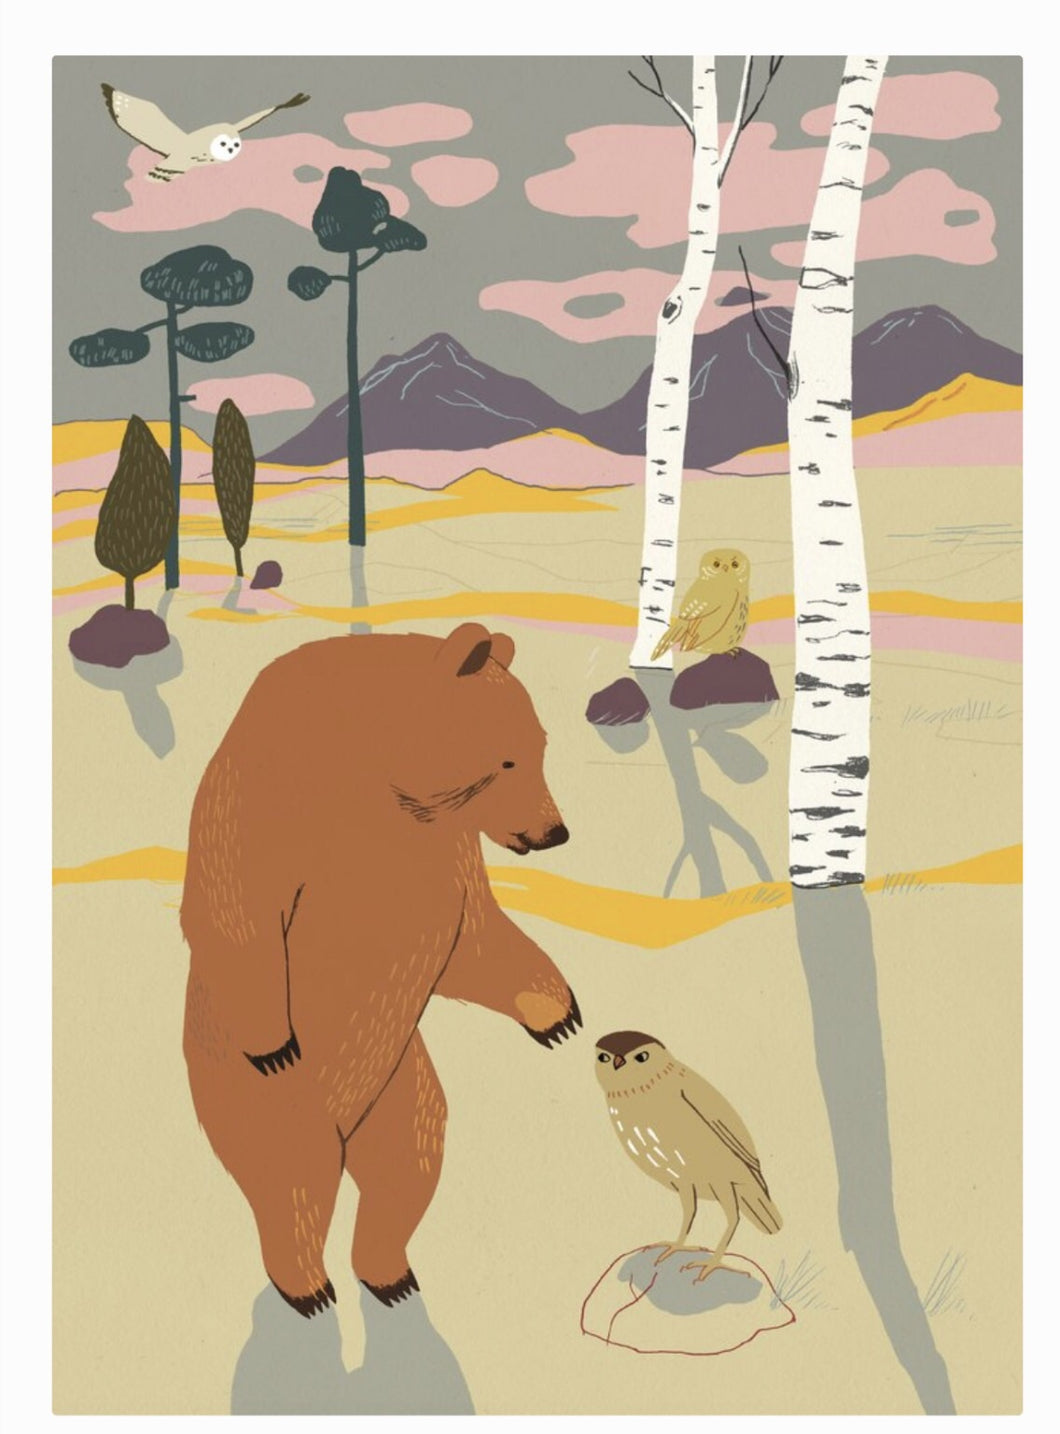 Forest Poster - Bear by Studio Morran